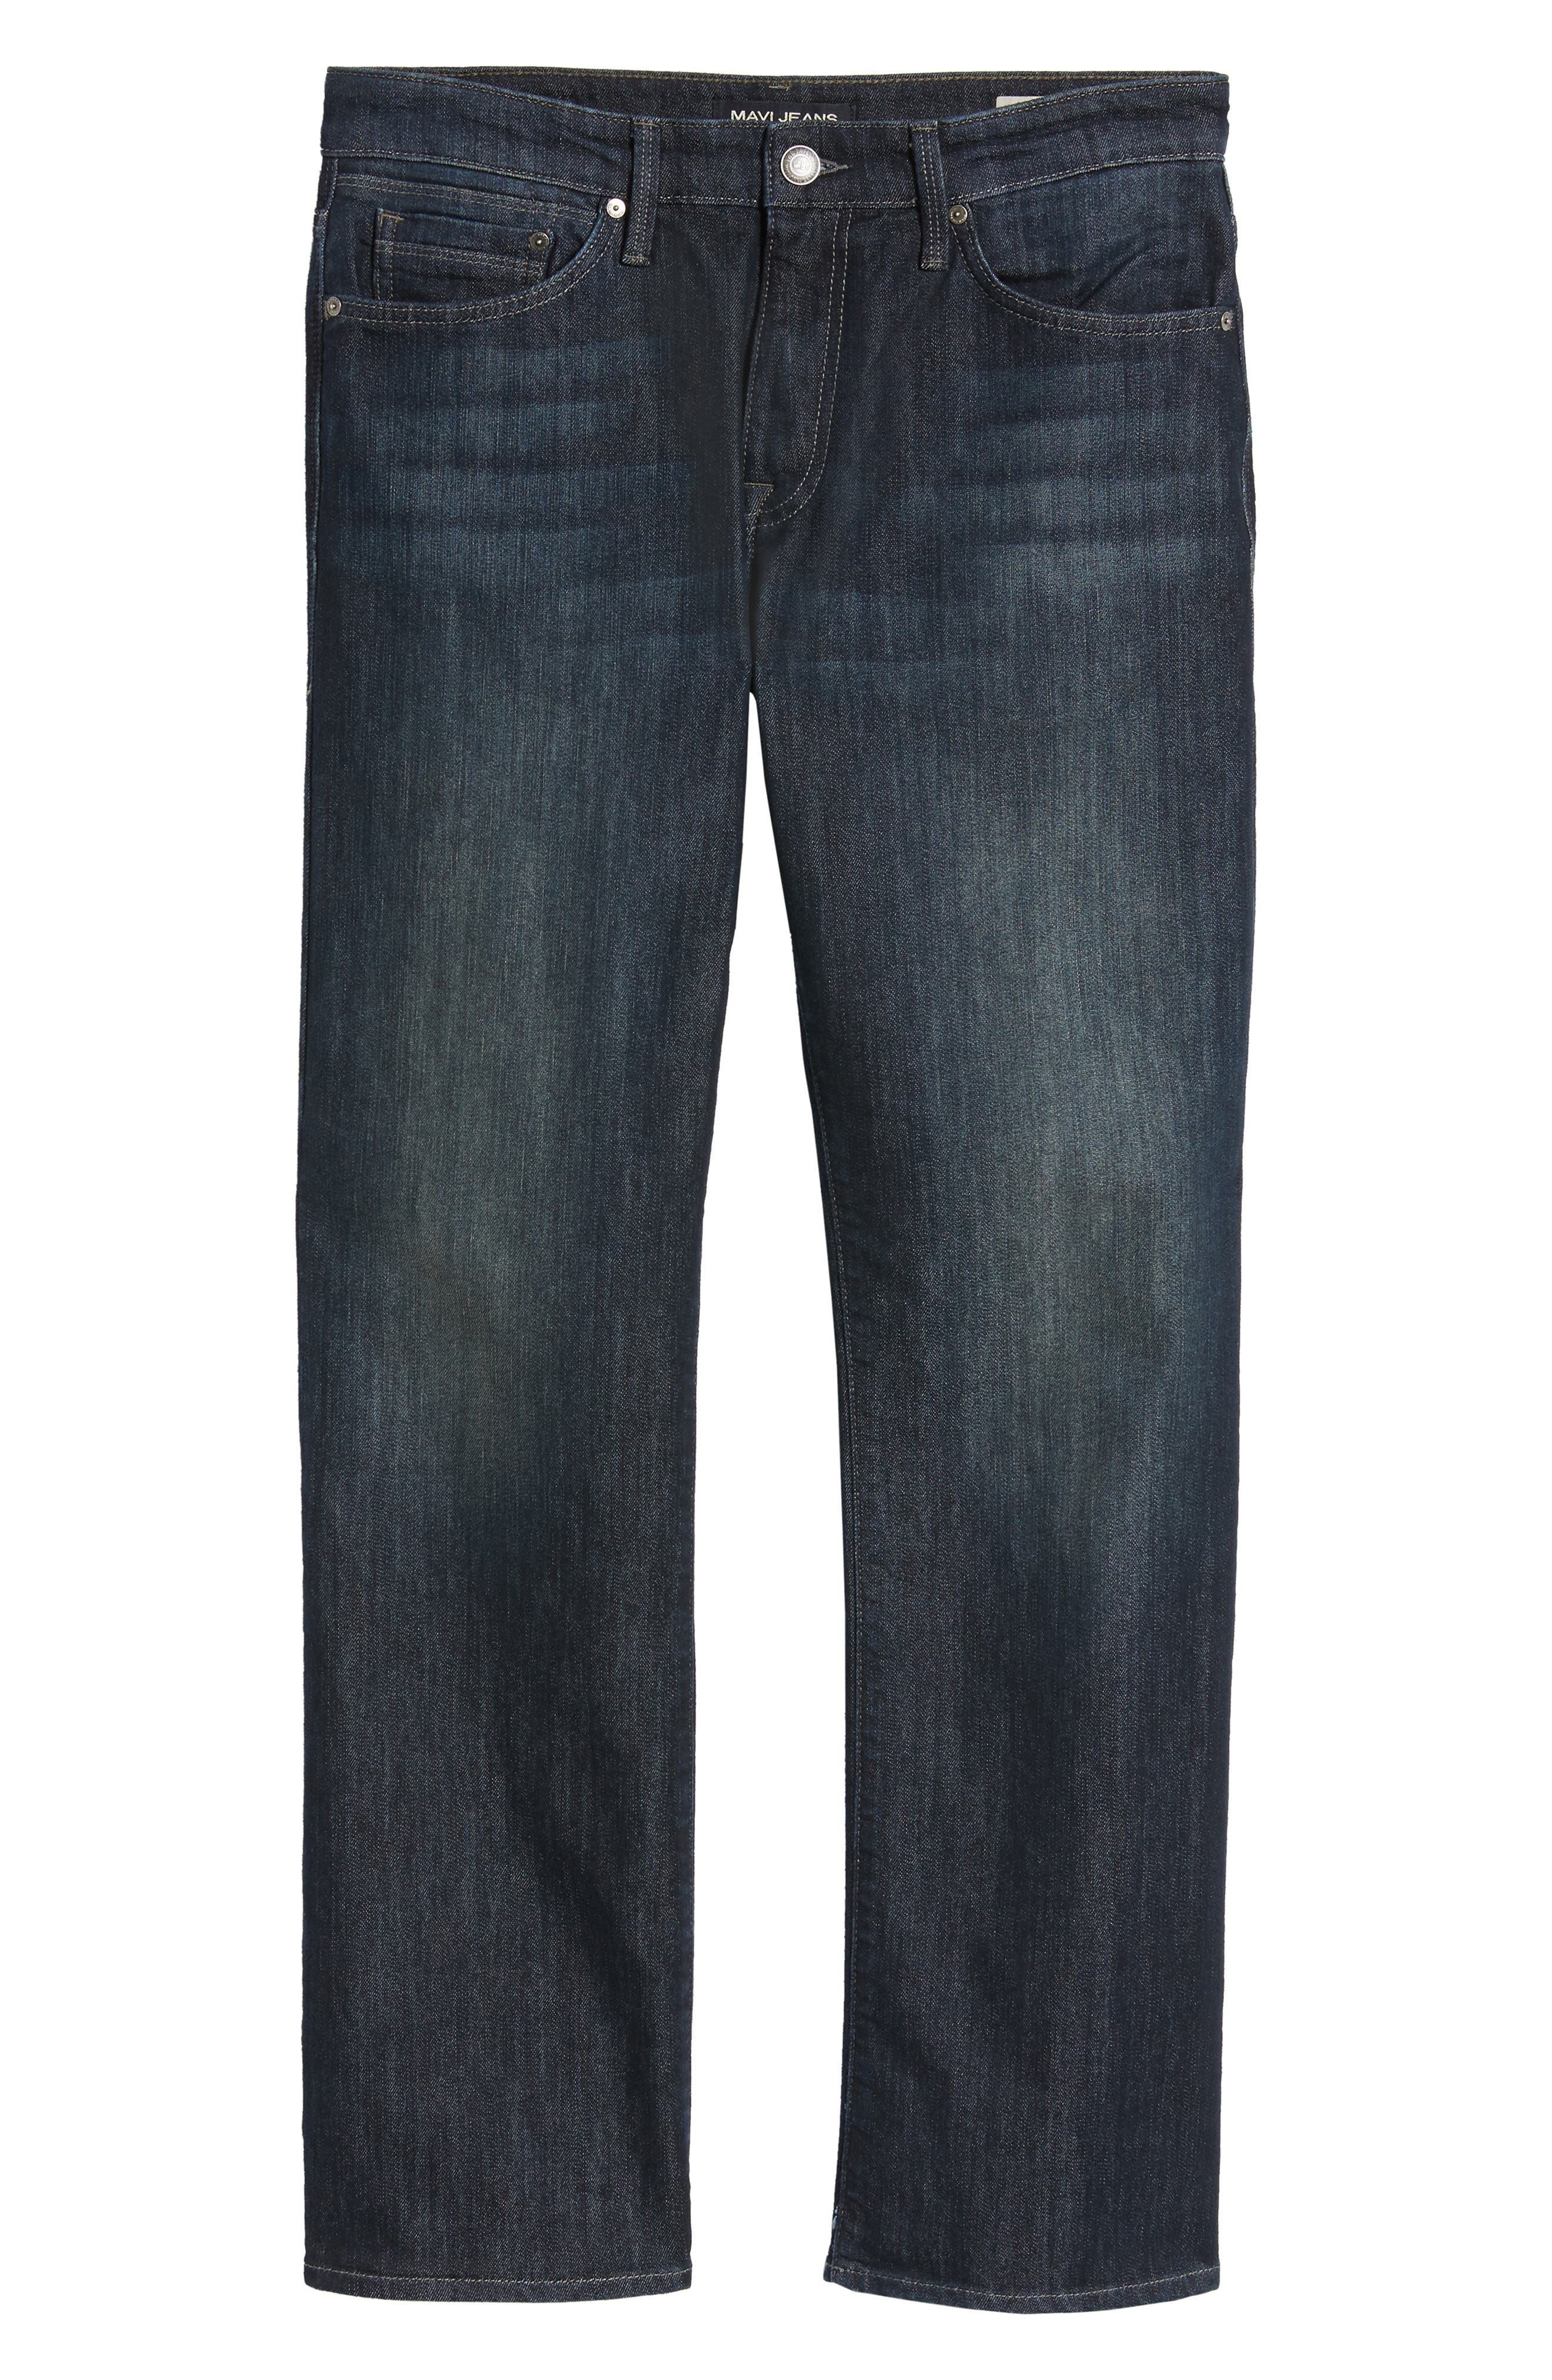 Josh Bootcut Jeans,                             Alternate thumbnail 6, color,                             DEEP STANFORD